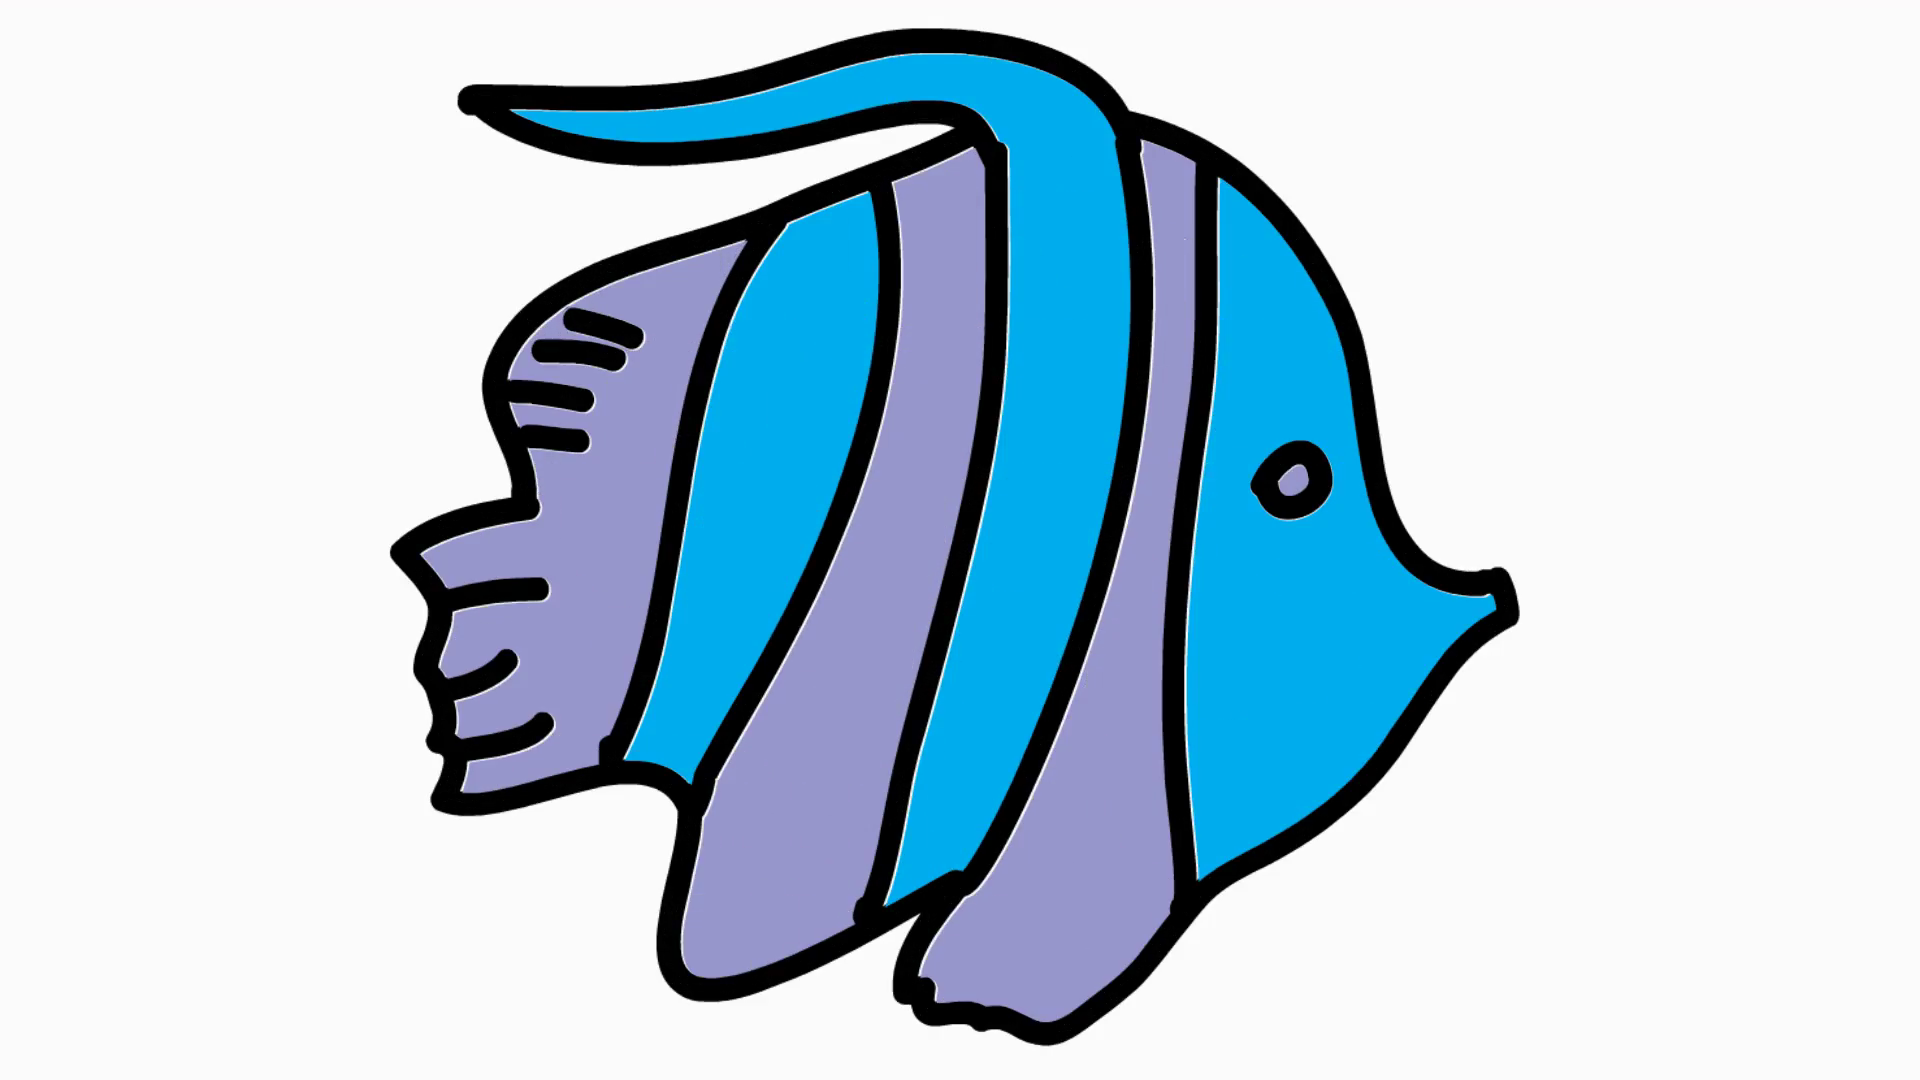 Fish clip art clear background. Animation with transparent motion